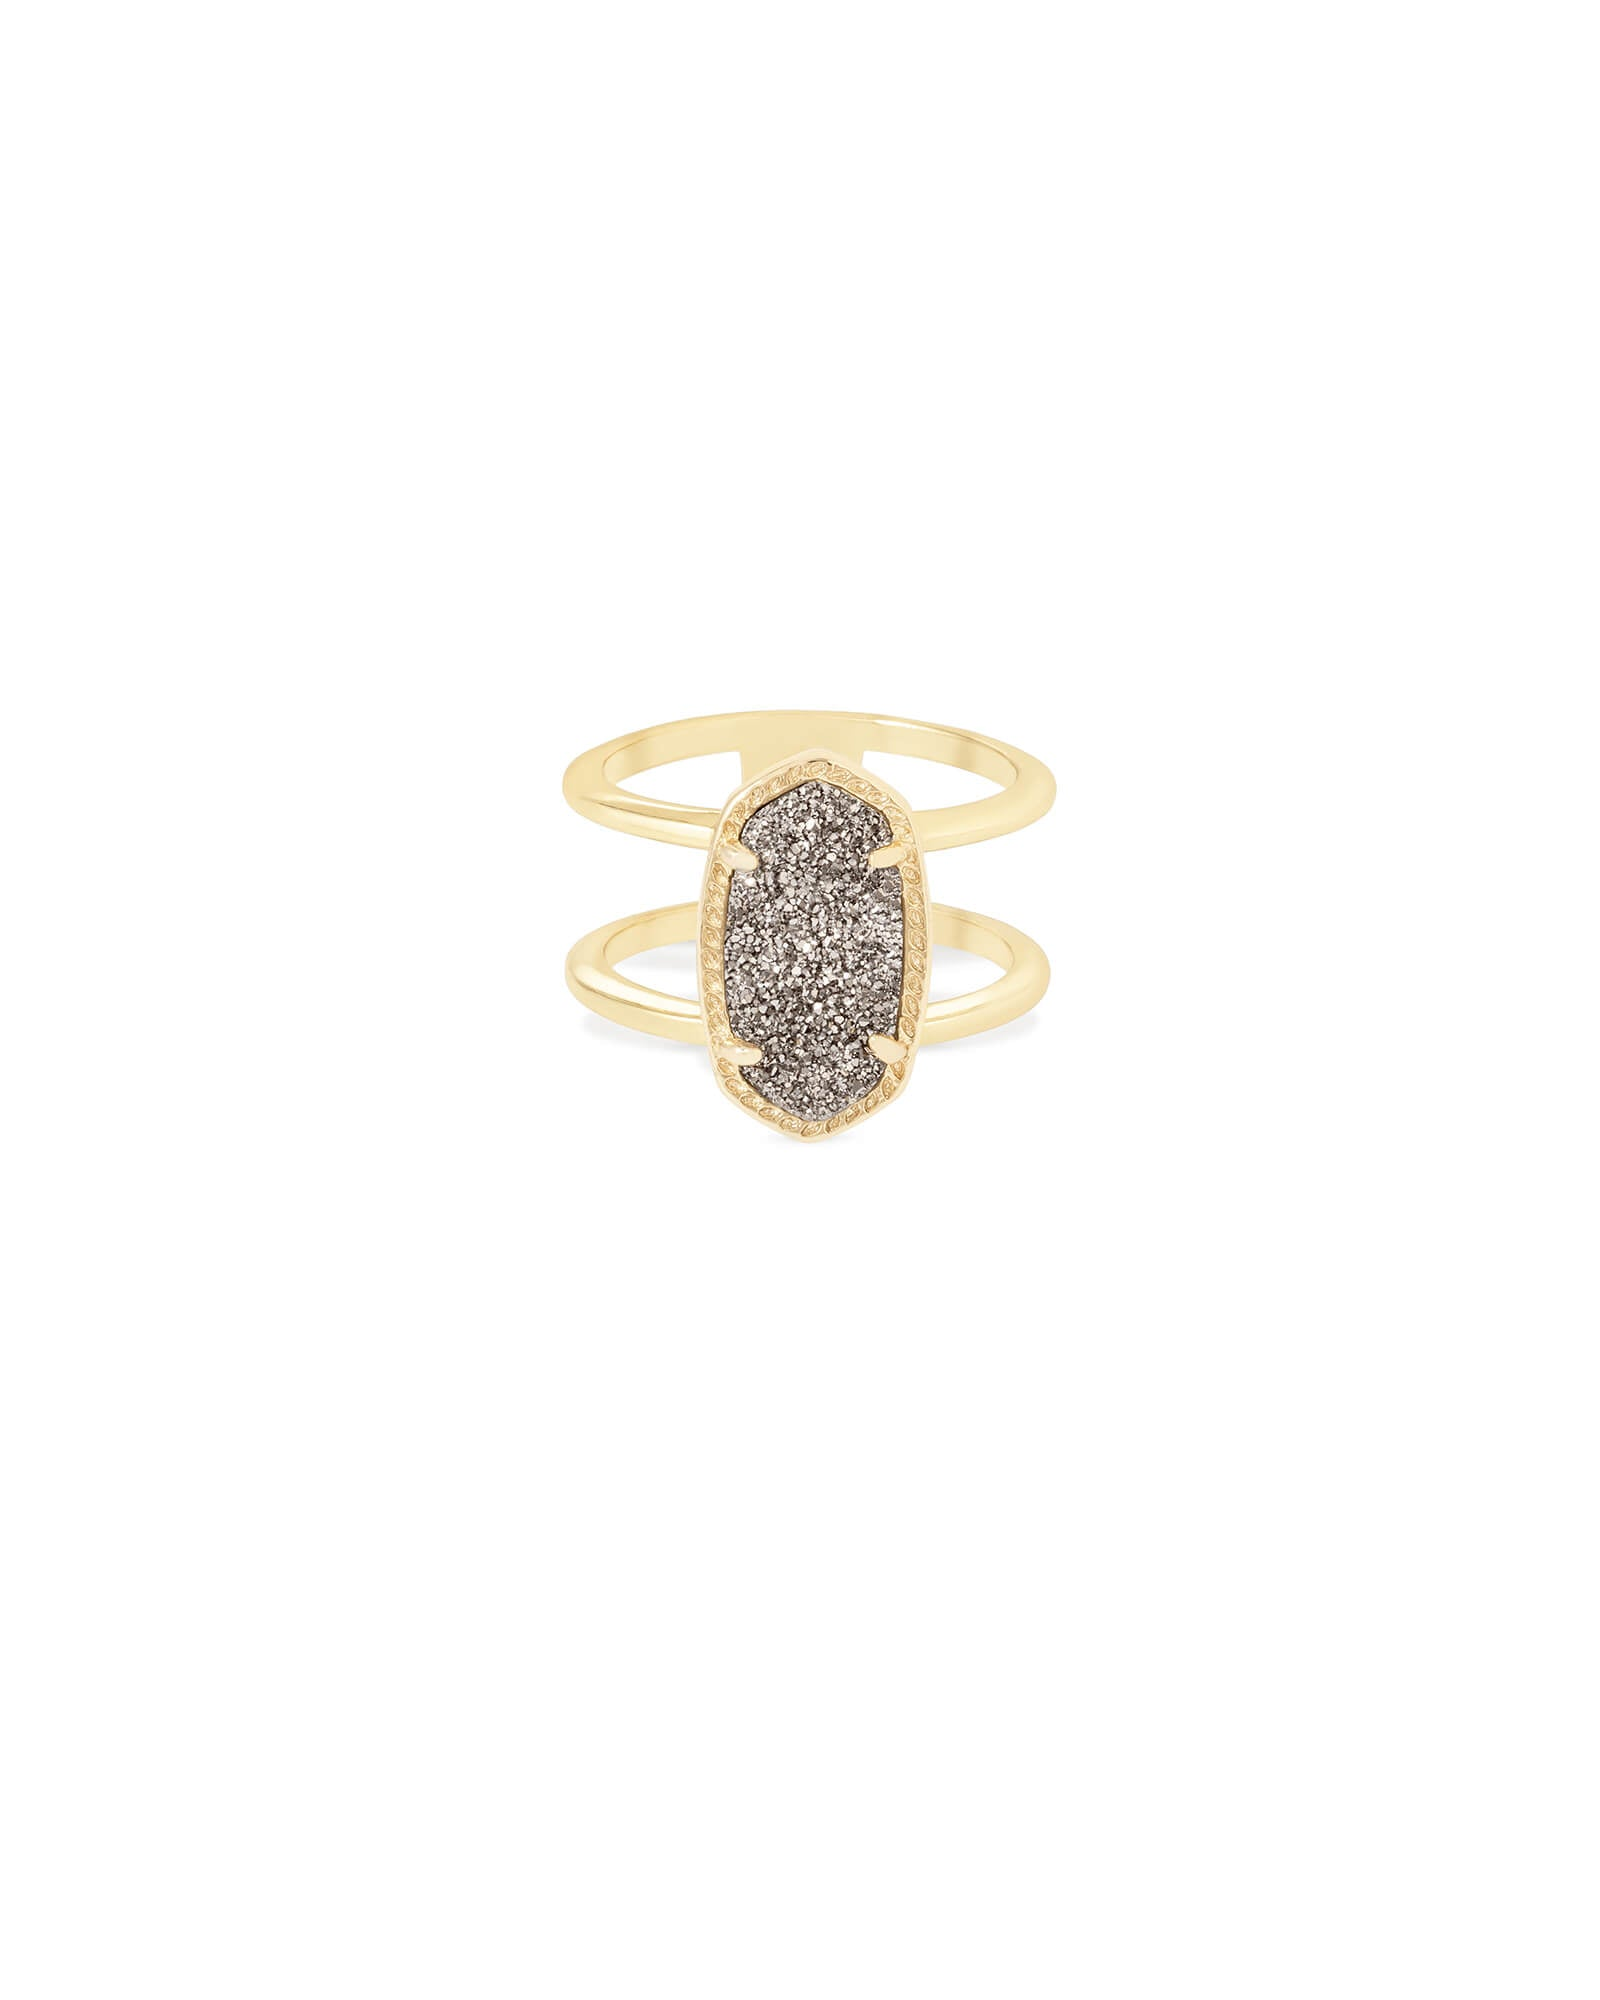 Elyse Ring in Gold / Platinum Drusy